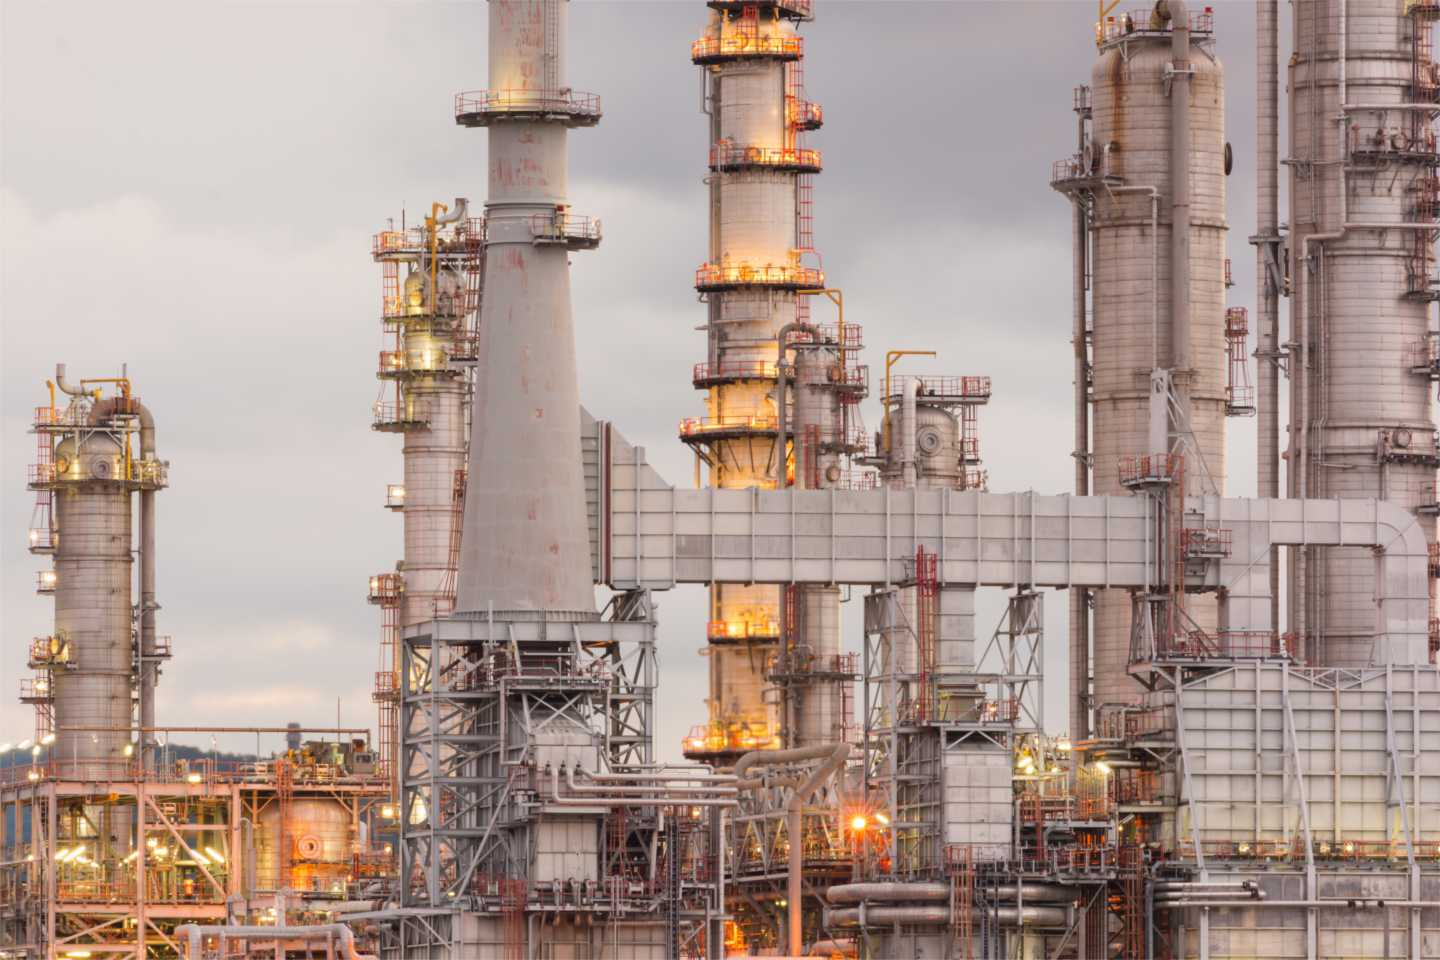 Clientele base includes leading refineries and power plants in Asia & Australasia